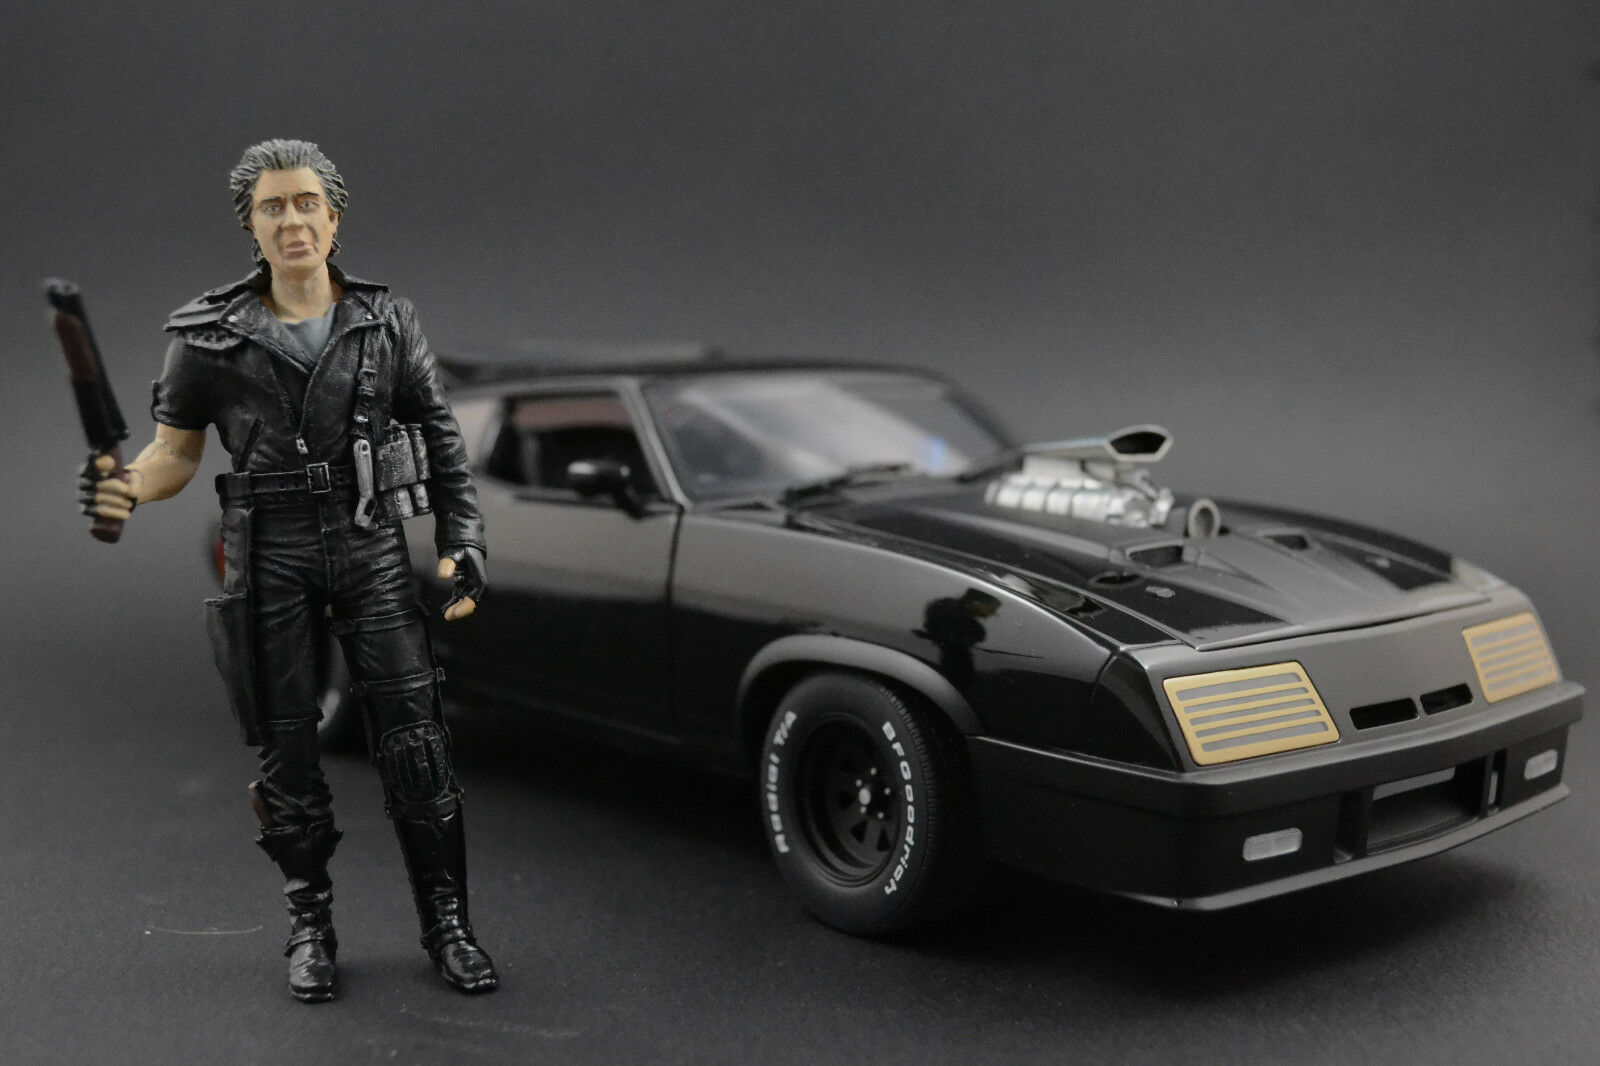 Mad Max Figura per 1 18 Ford Falcon Interceptor AUTOart